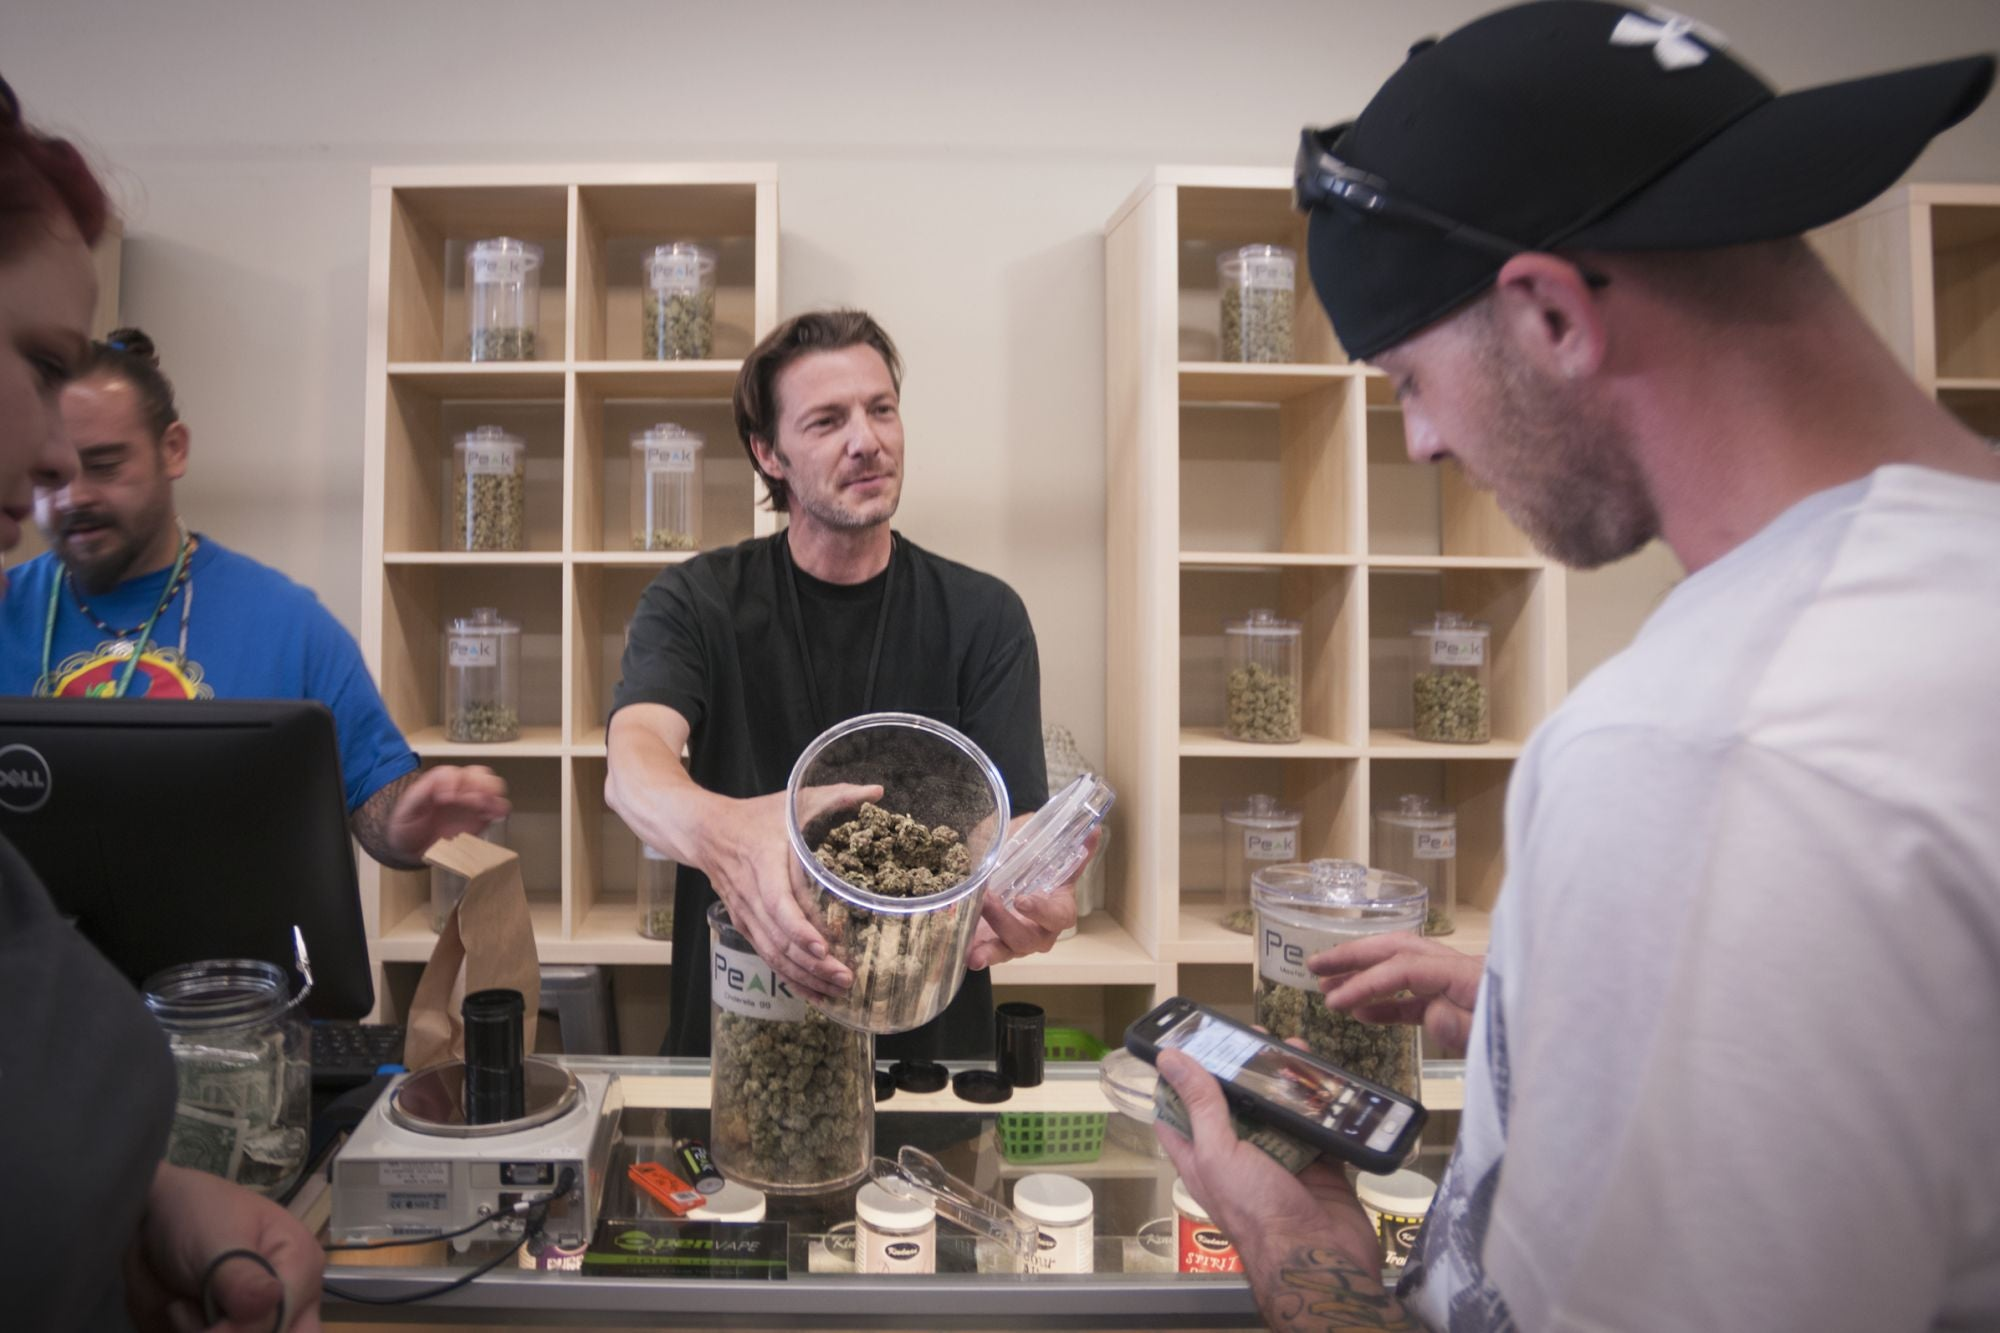 4 Proven Strategies For Marketing To The B2B Cannabis Industry